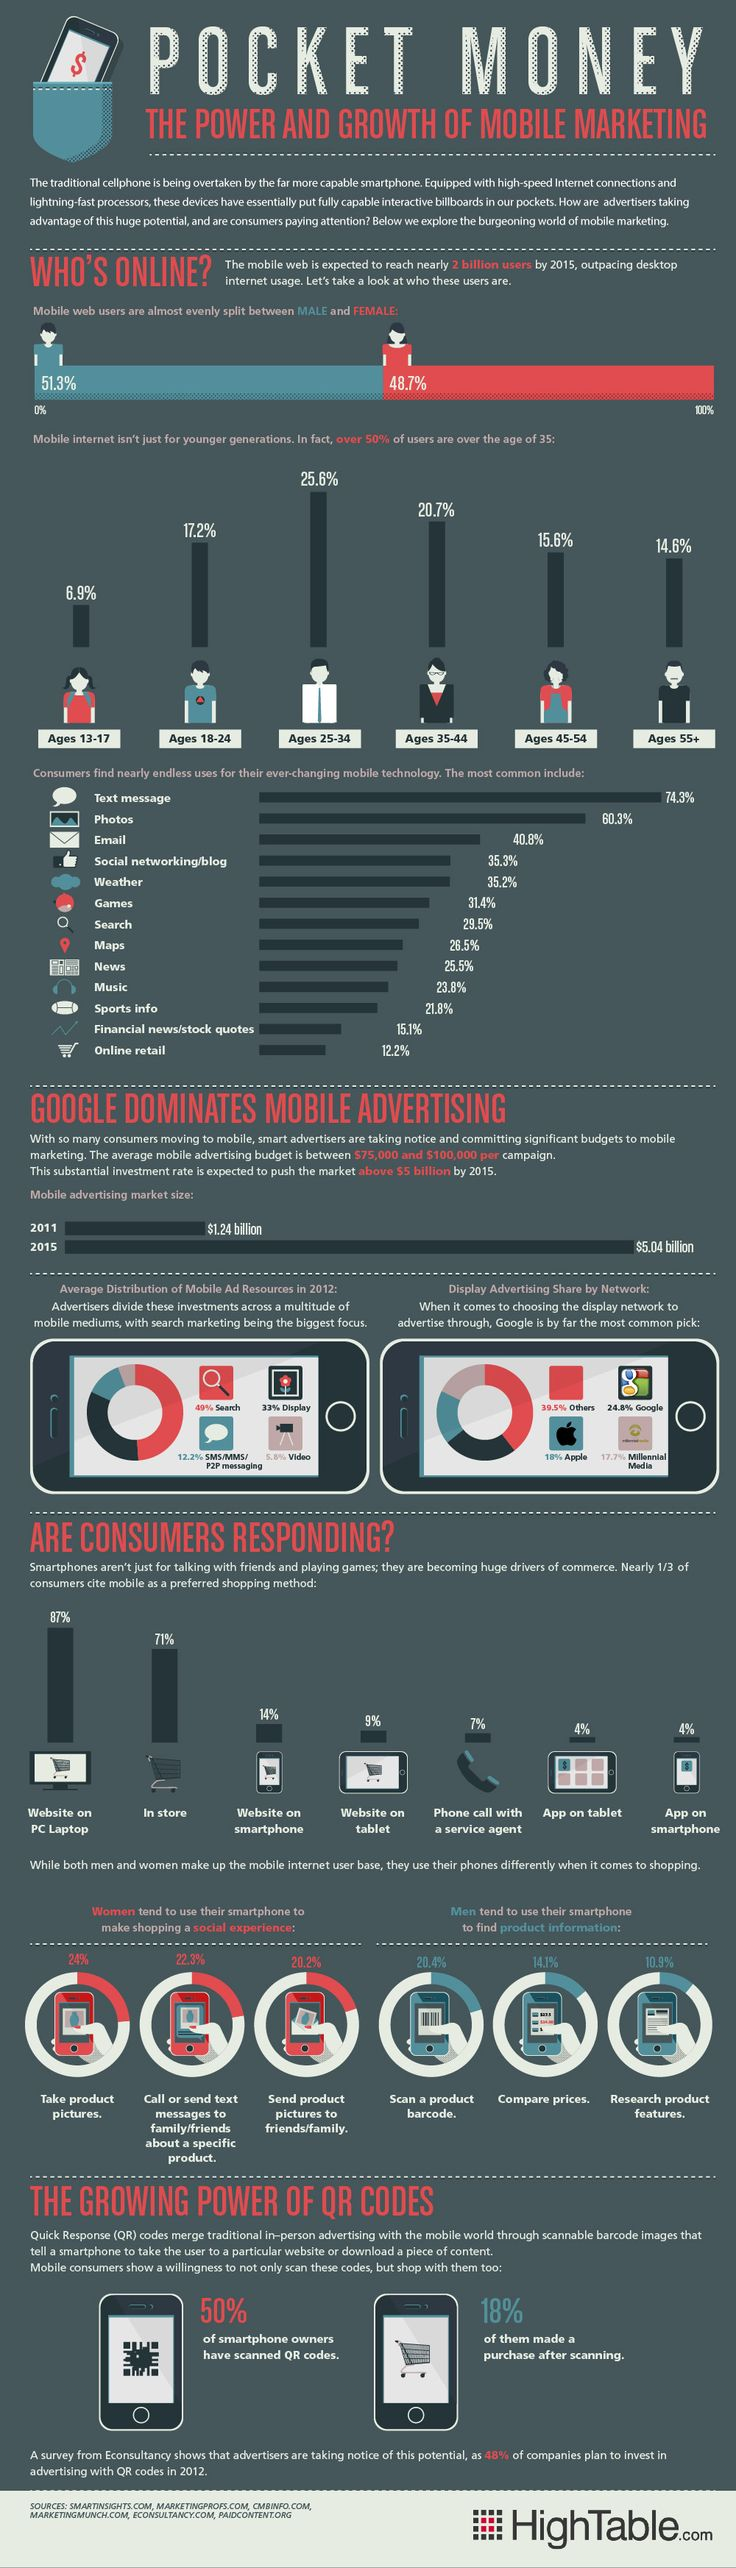 Great infographic about mobile adoption and usage trends.  Mobile Marketing by the Numbers [INFOGRAPHIC]